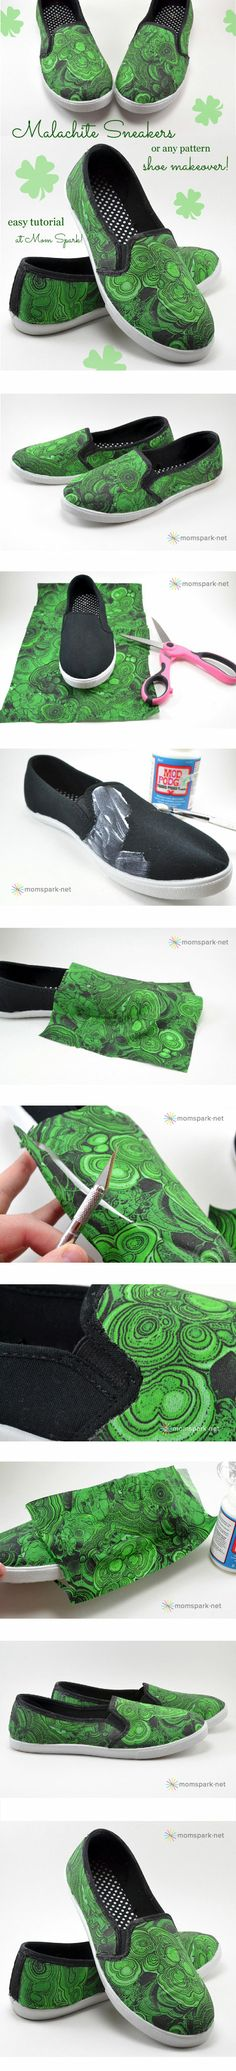 DIY: Shoe Makeover — Malachite Sneakers from mindsparklemag.com/?sparkles/diy-shoe-makeover-malachite-sneakers.html/